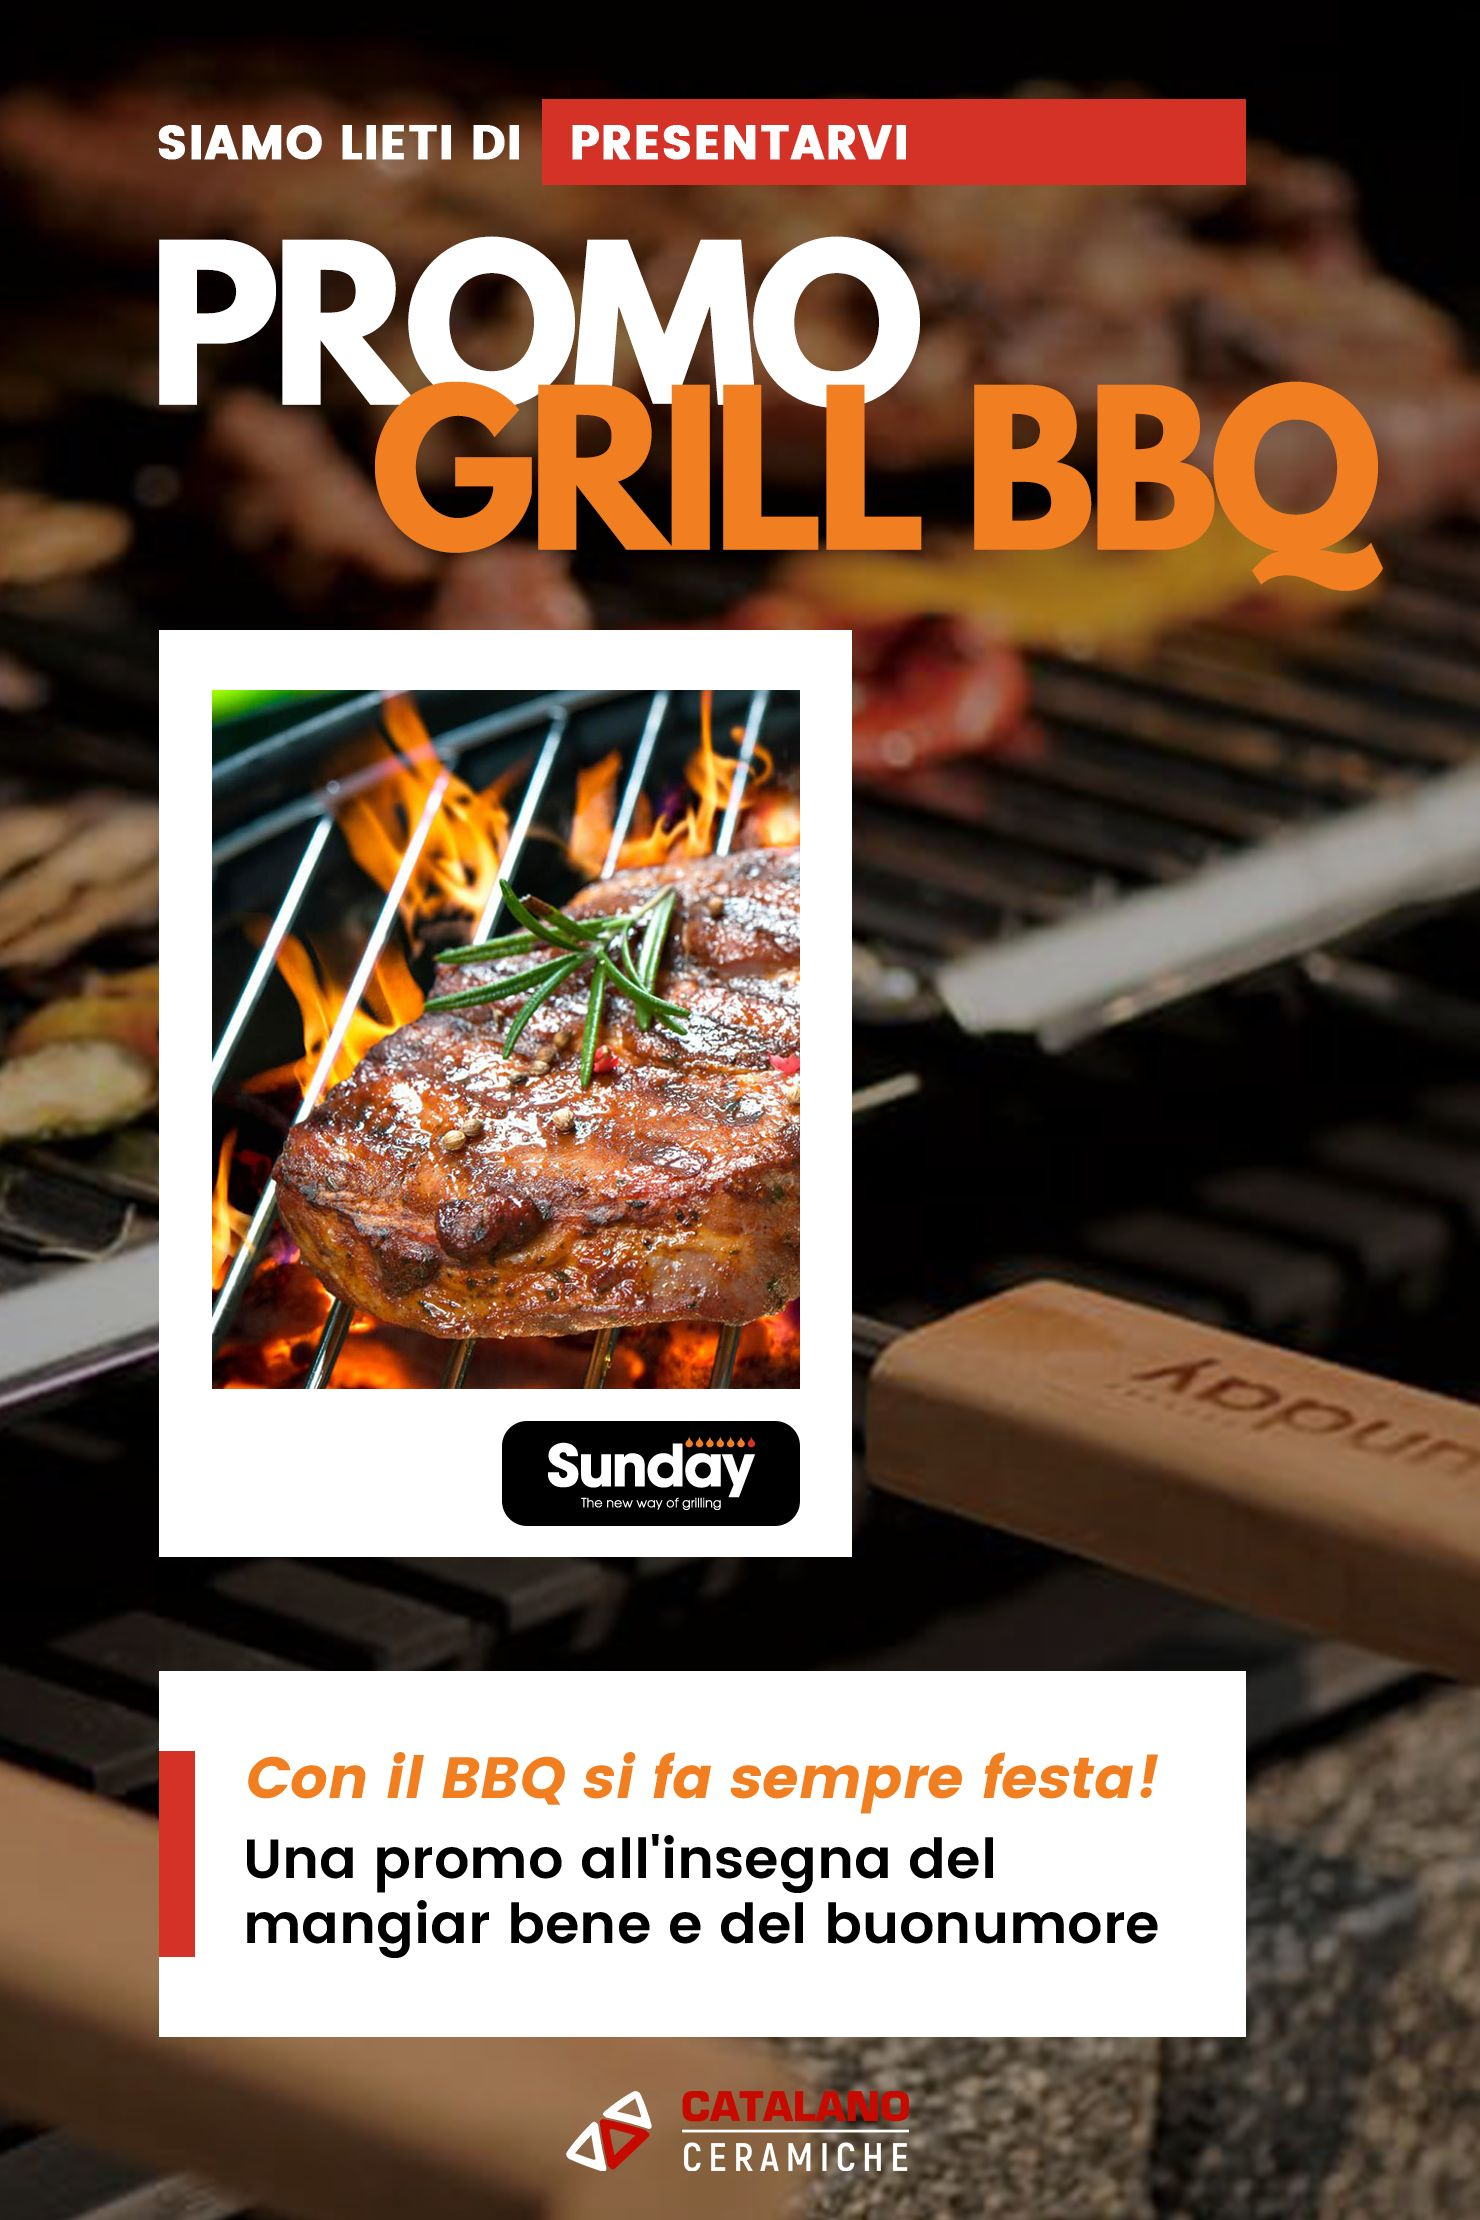 Promo Grill BBQ _ Sunday MCZ Group